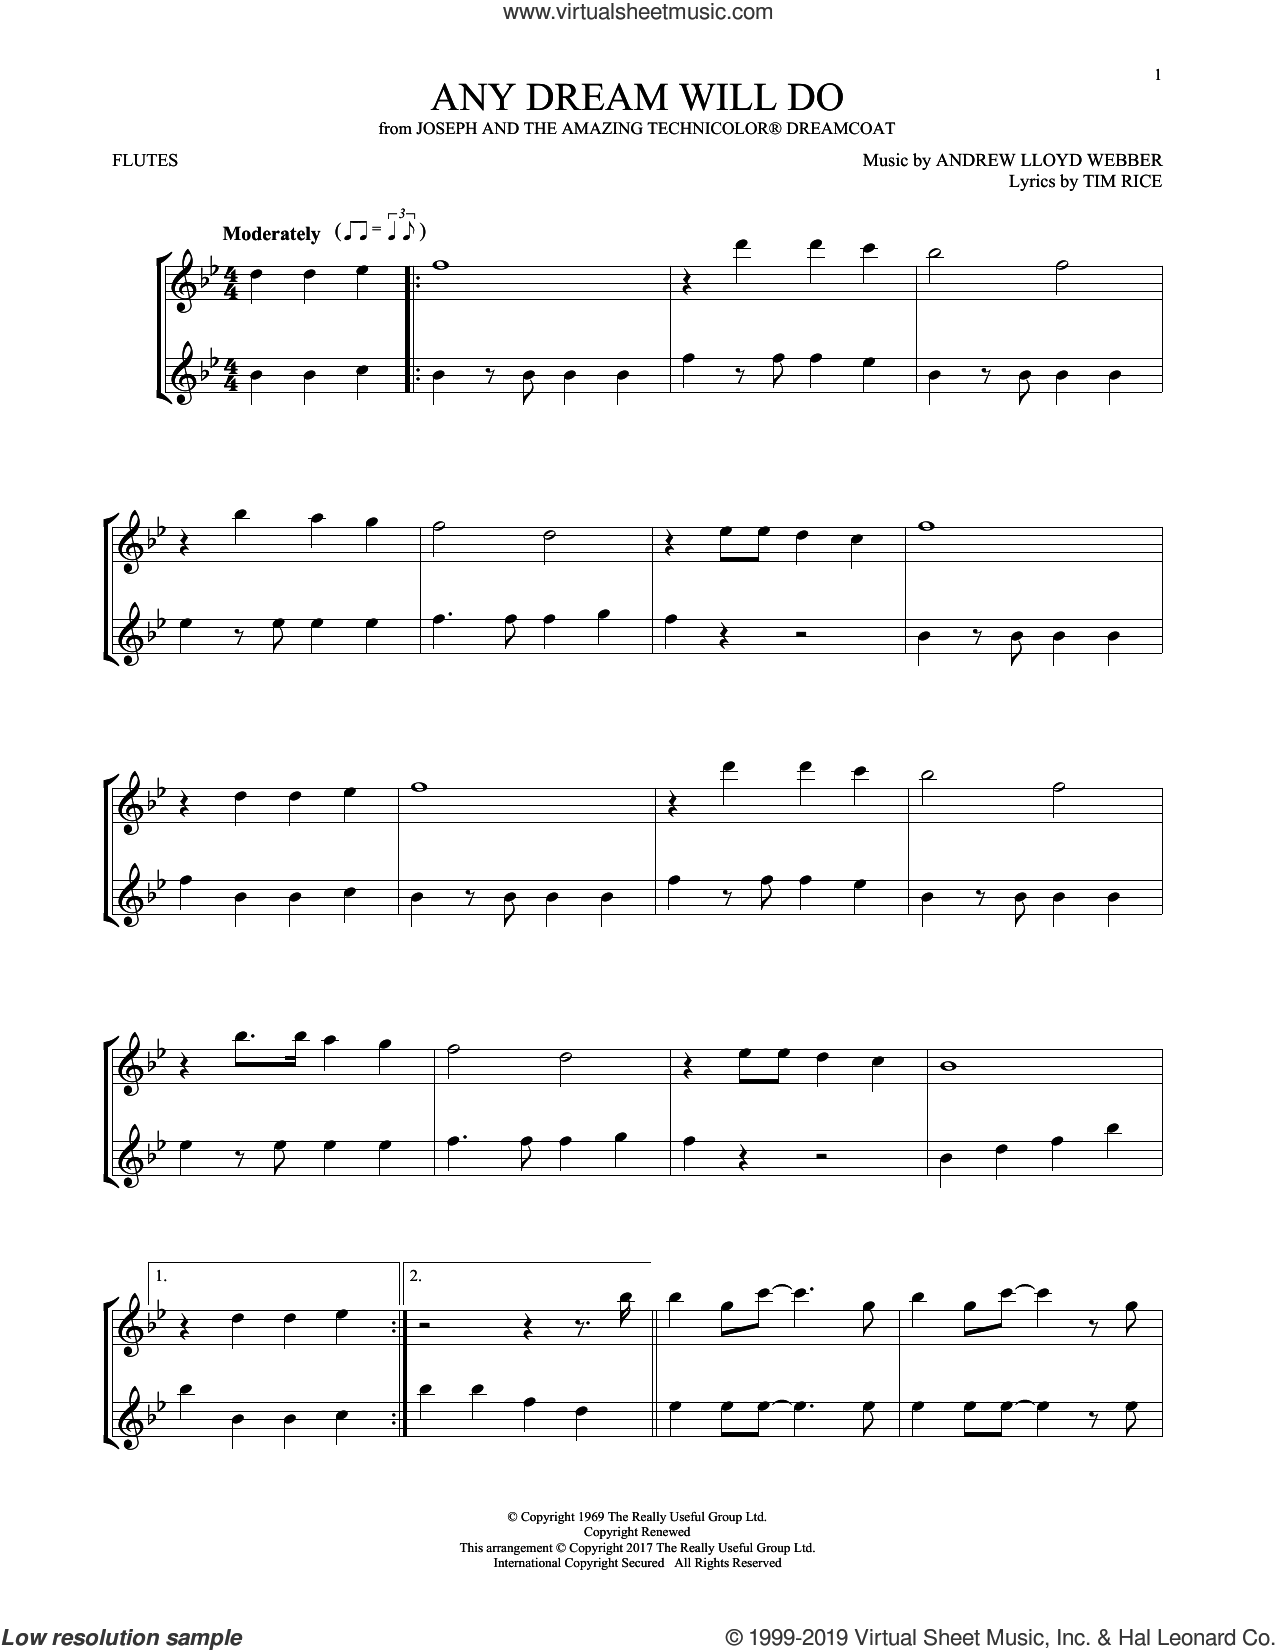 Any Dream Will Do (from Joseph And The Amazing Technicolor Dreamcoat) sheet music for two flutes (duets) by Andrew Lloyd Webber and Tim Rice, intermediate skill level